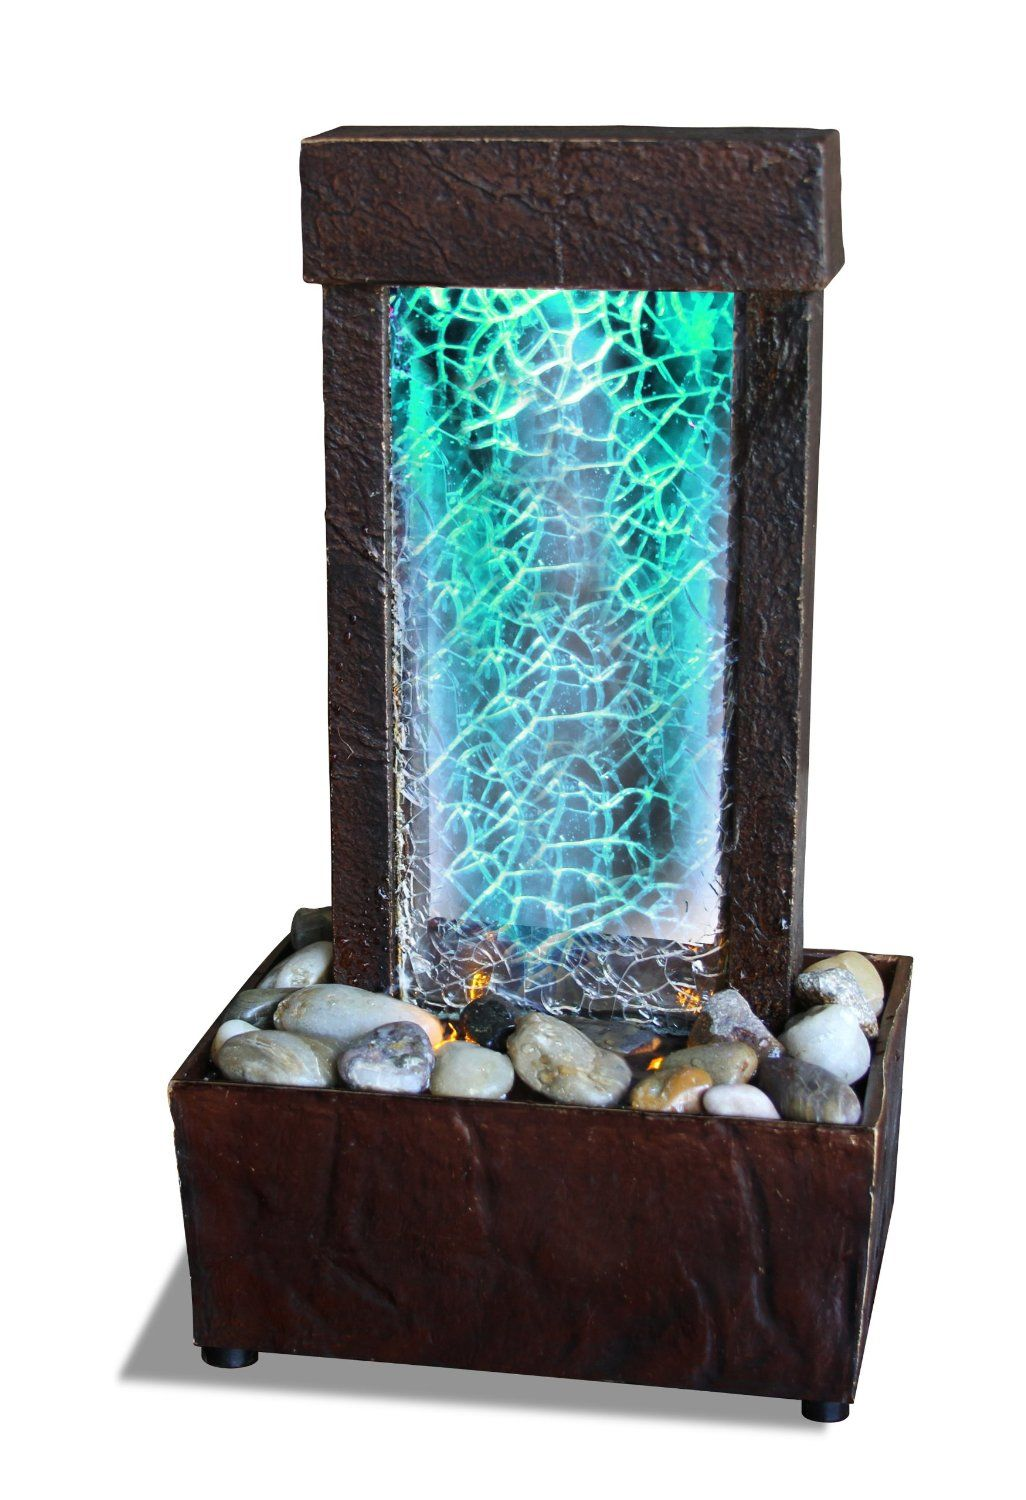 Cracked Glass Light Show LED Indoor Fountain - Tabletop Fountains ...